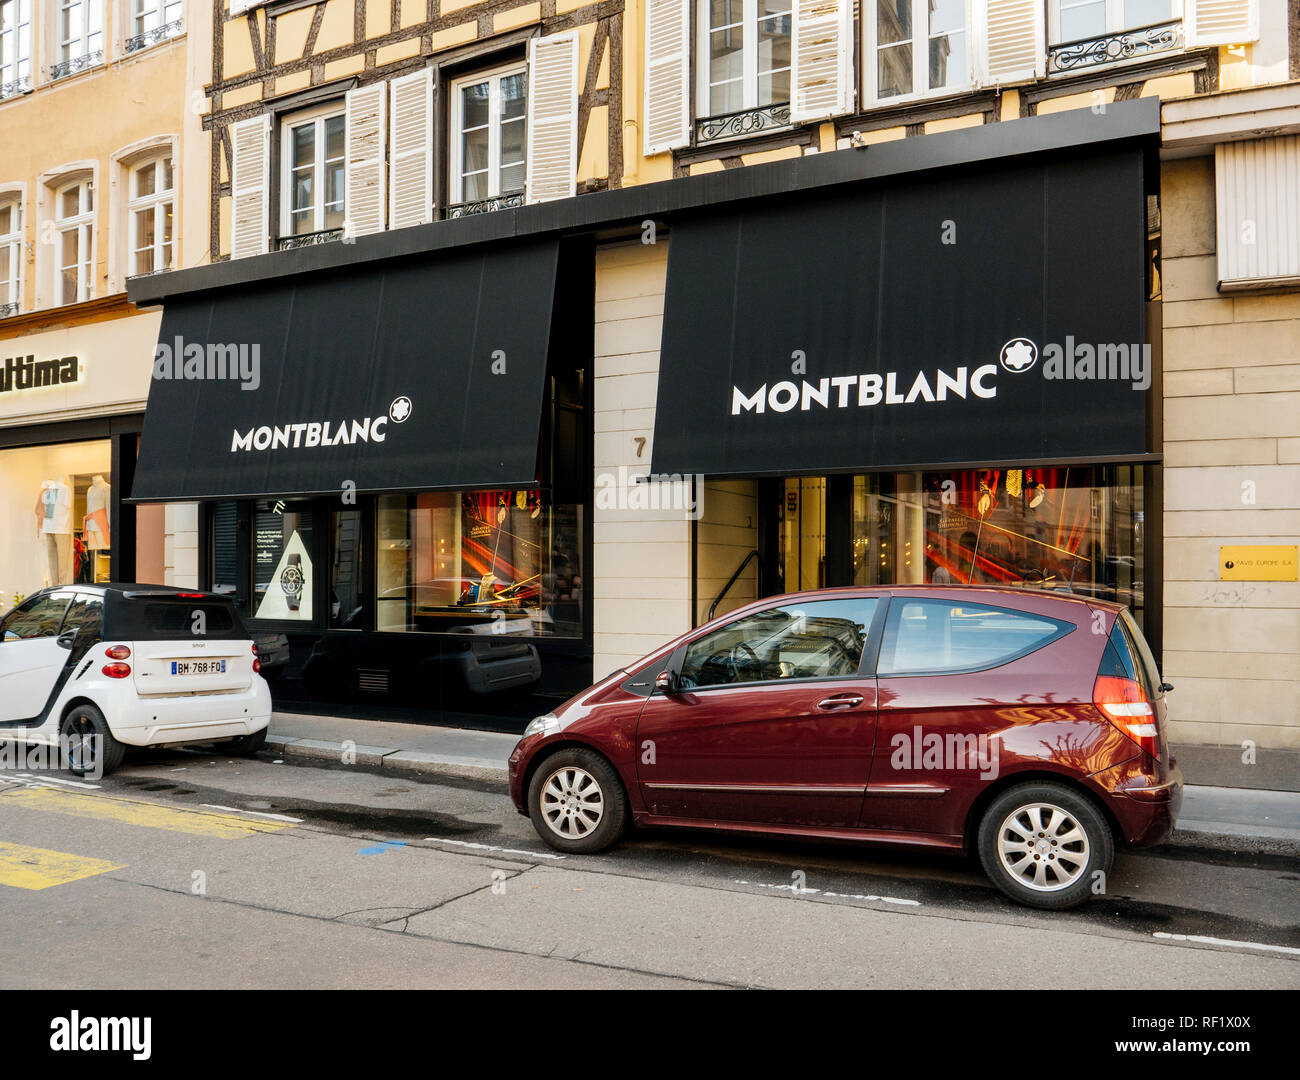 STRASBOURG, FRANCE - 13 MAR, 2018: Luxury Montblanc watch store in Strasbourg with facade  showing elegant model of watches  - Stock Image